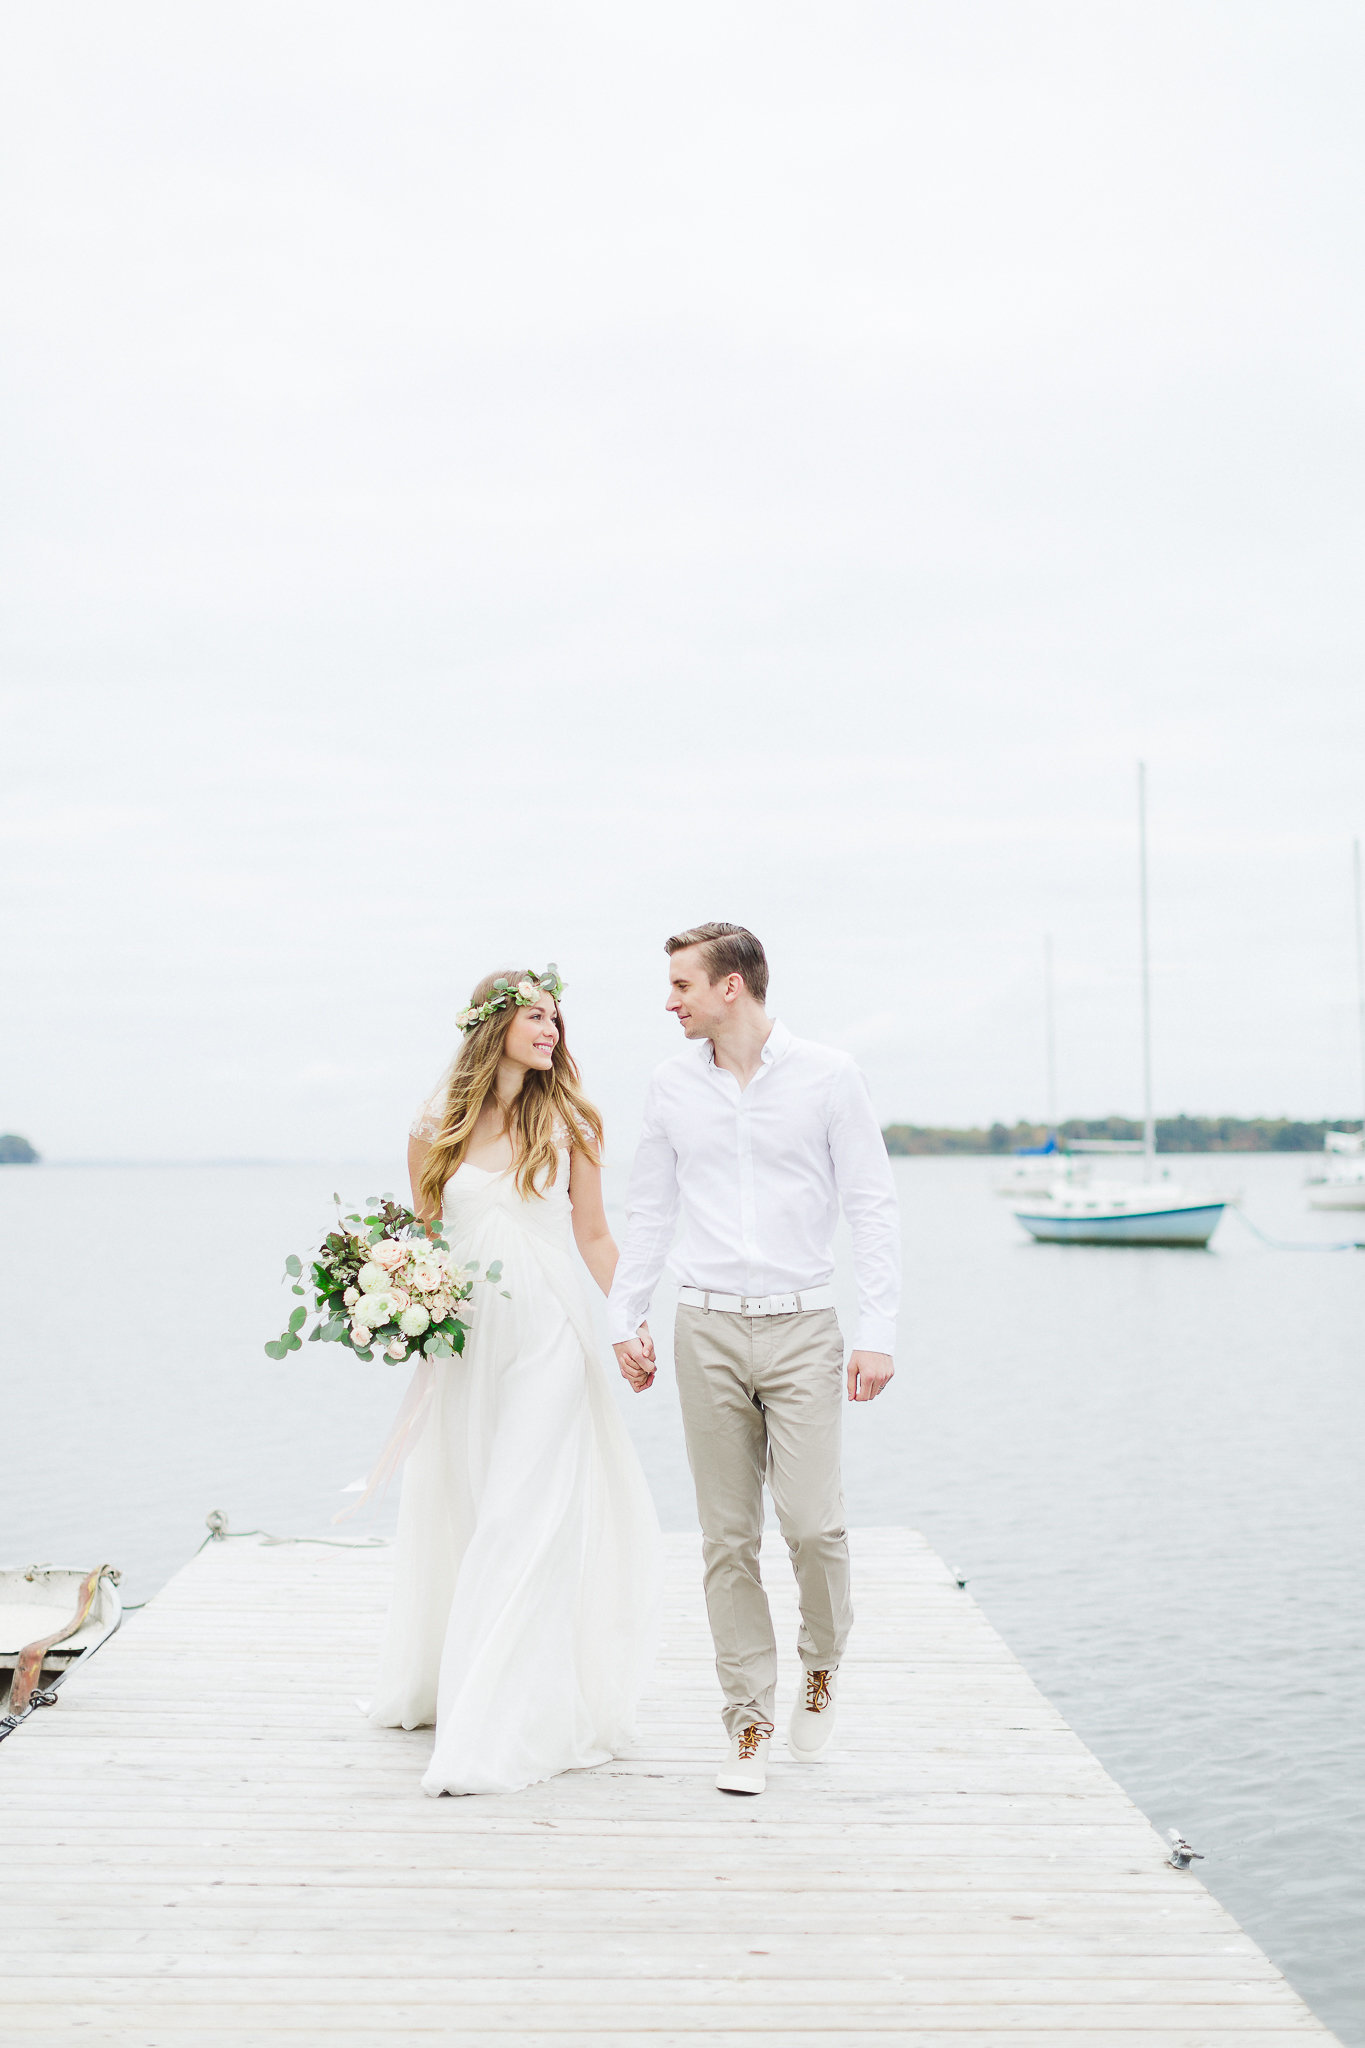 photographe-mariage-montreal-west-island-lisa-renault-photographie-montreal-wedding-photographer-27